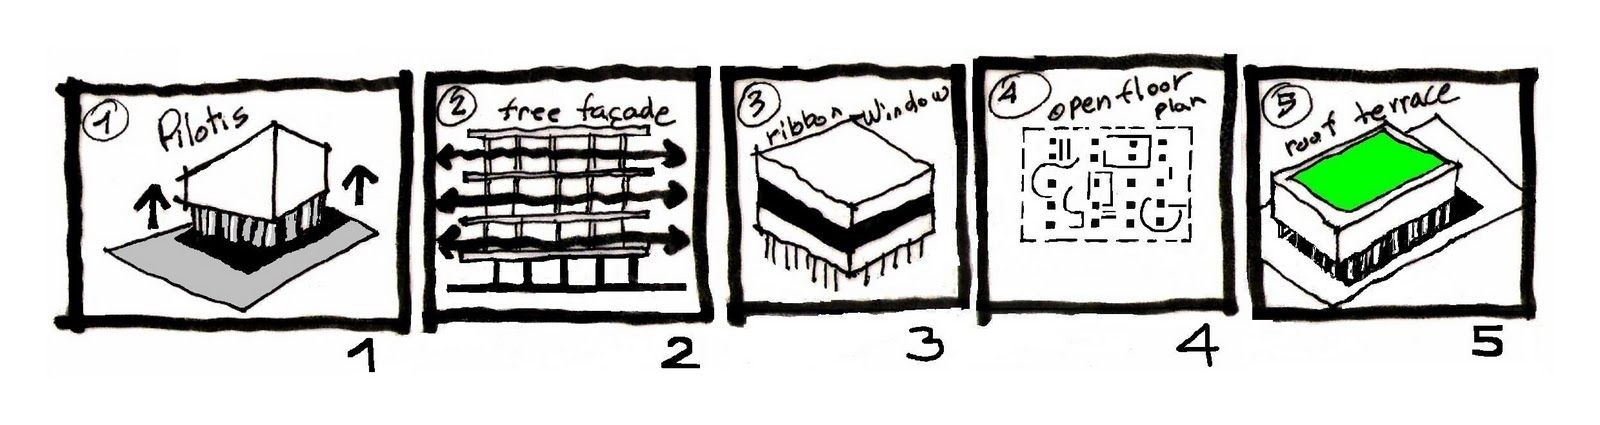 What is the relation between philosophy and architecture? - Sheet1